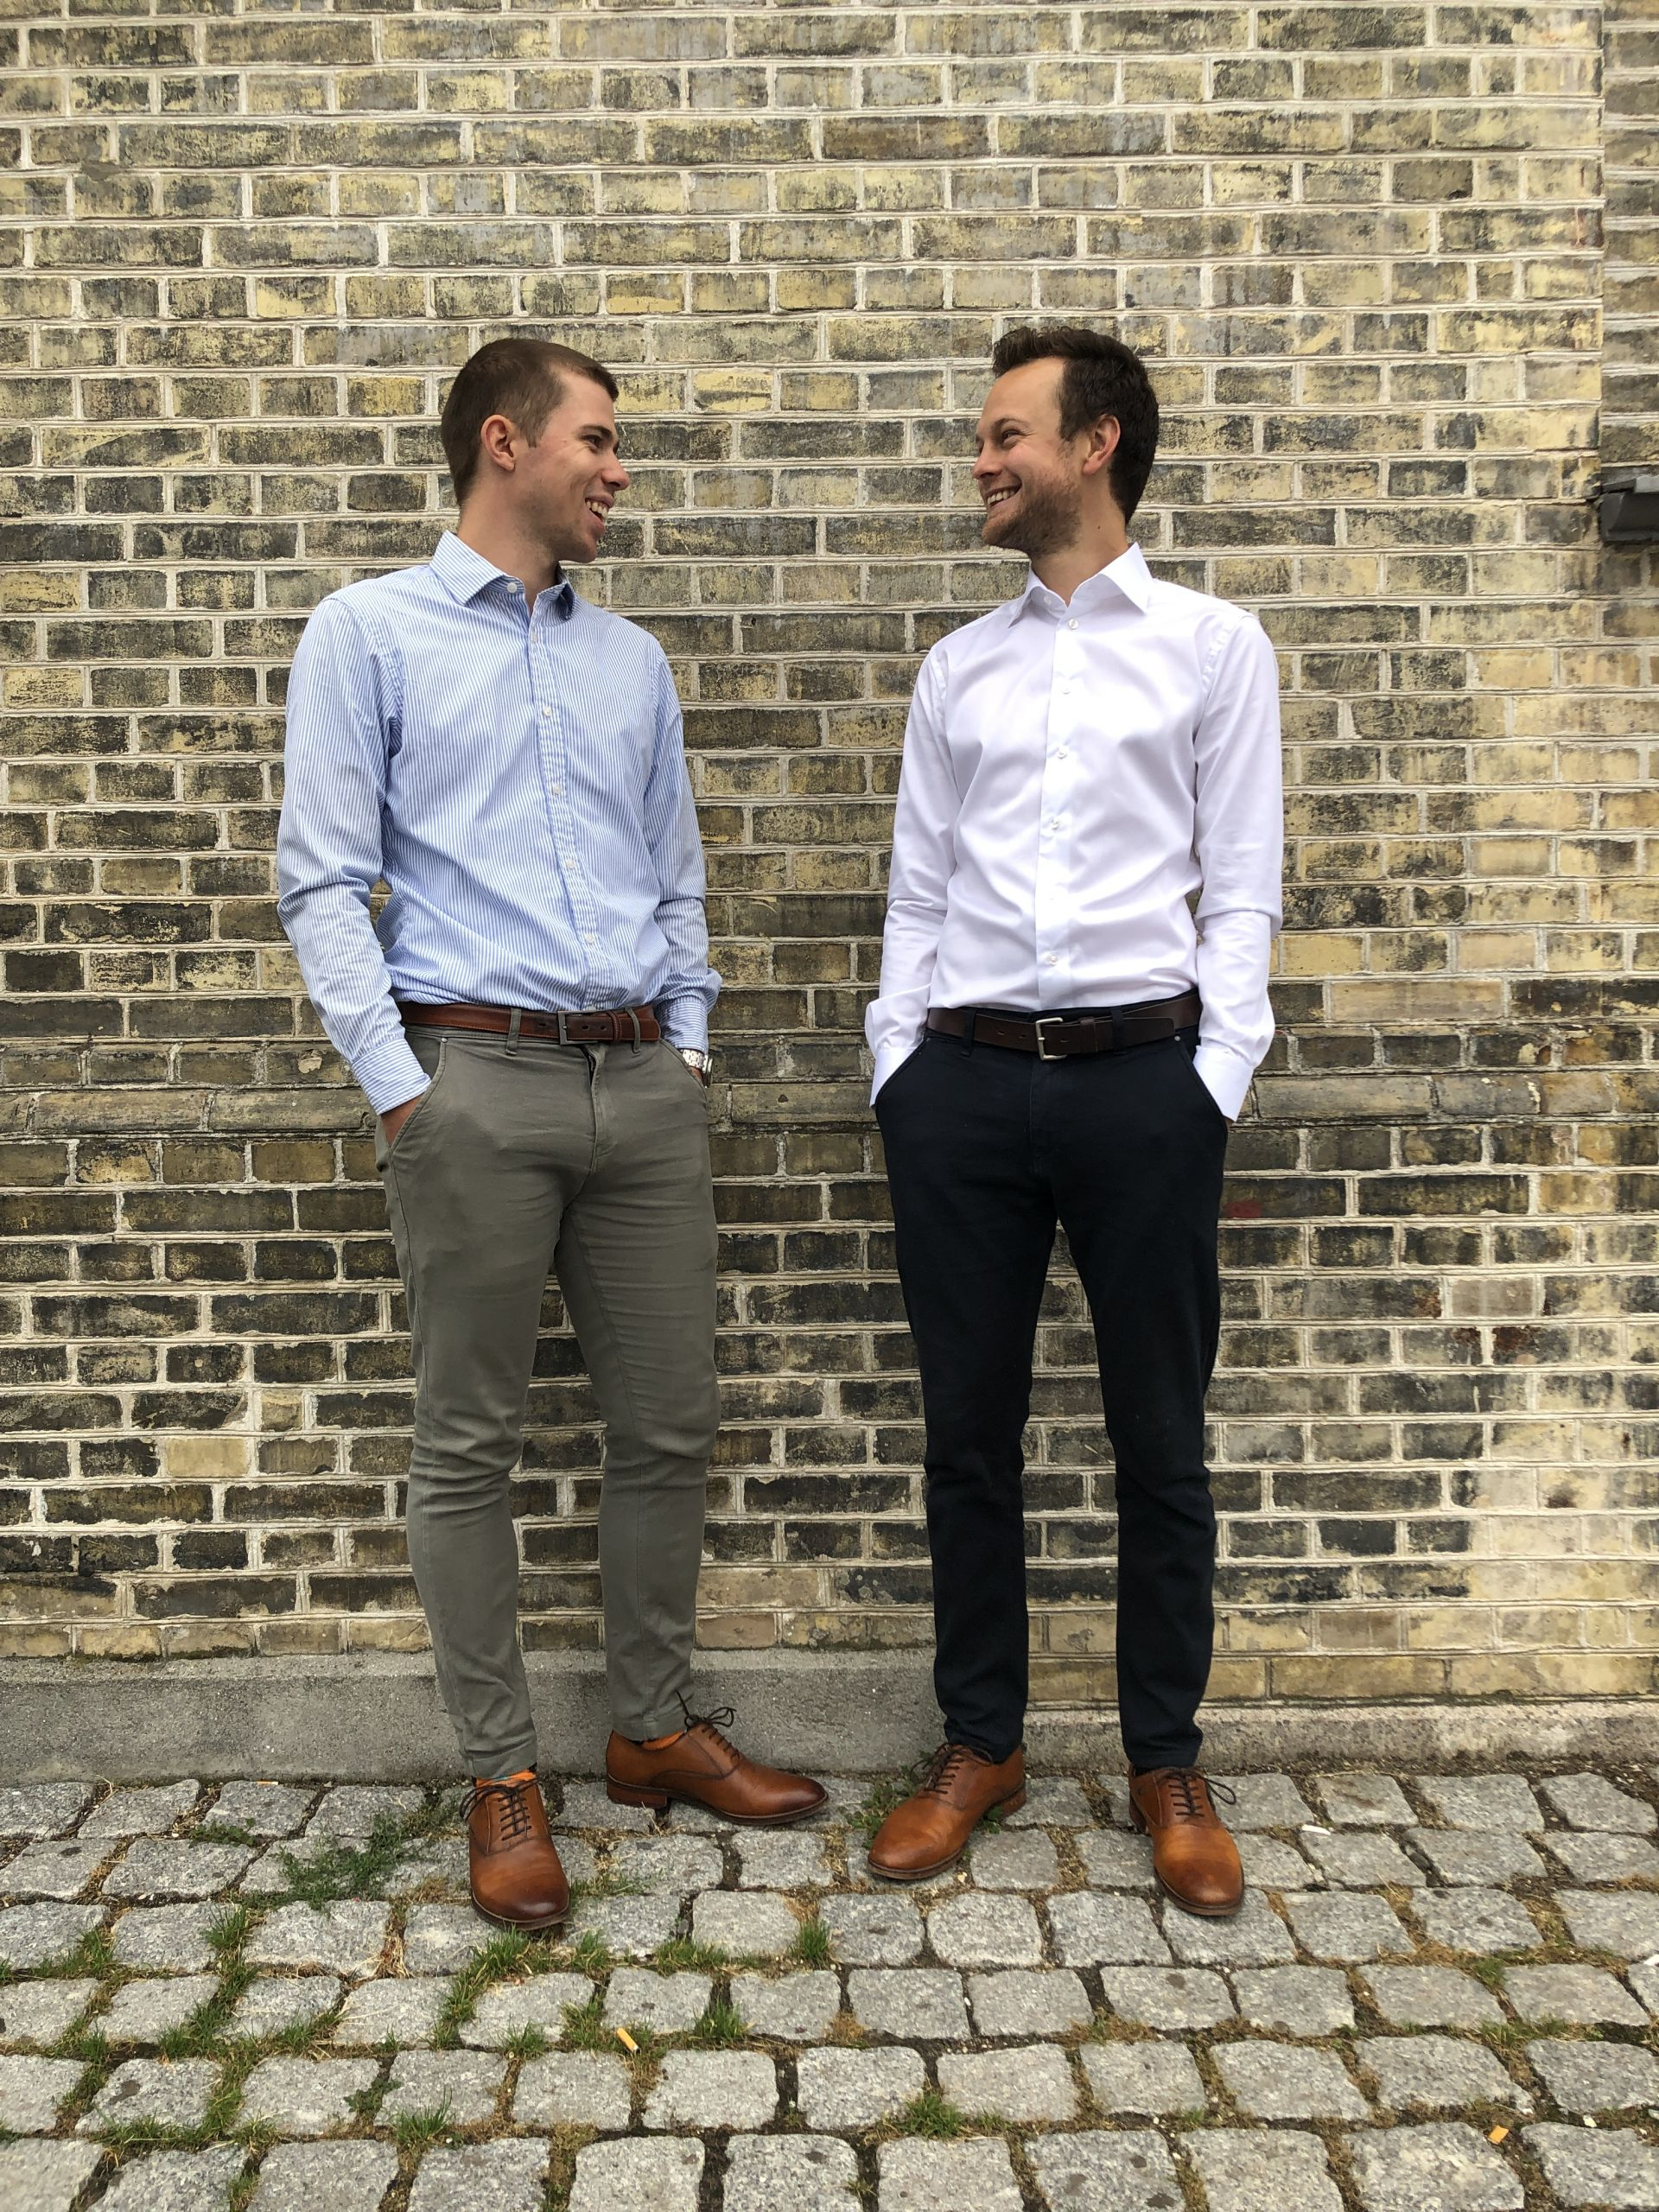 Two men in suits standing up against a wall